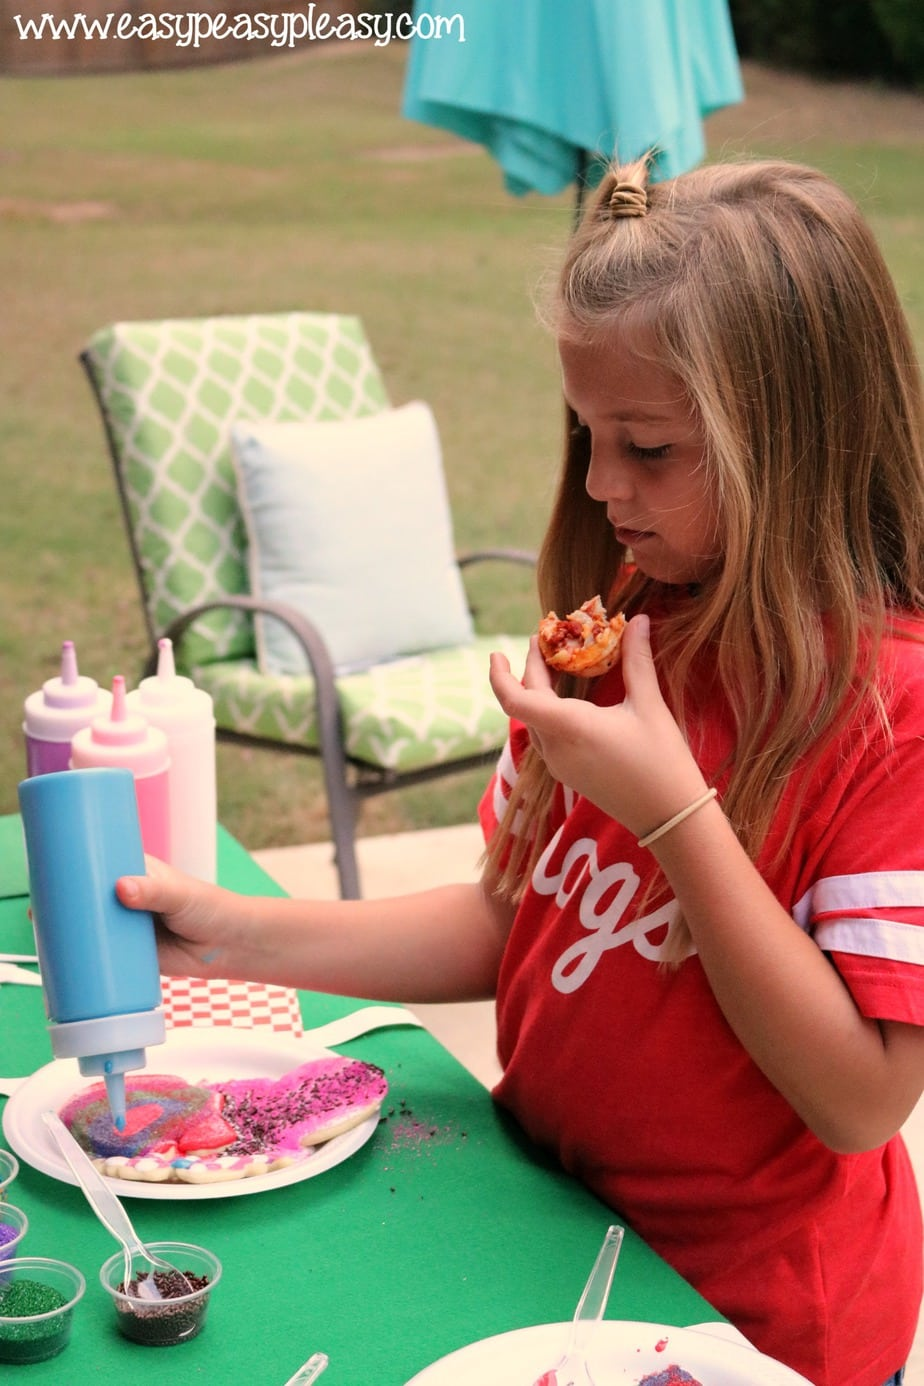 Pizza + Cookie Decorating = Game Day Fun For Kids